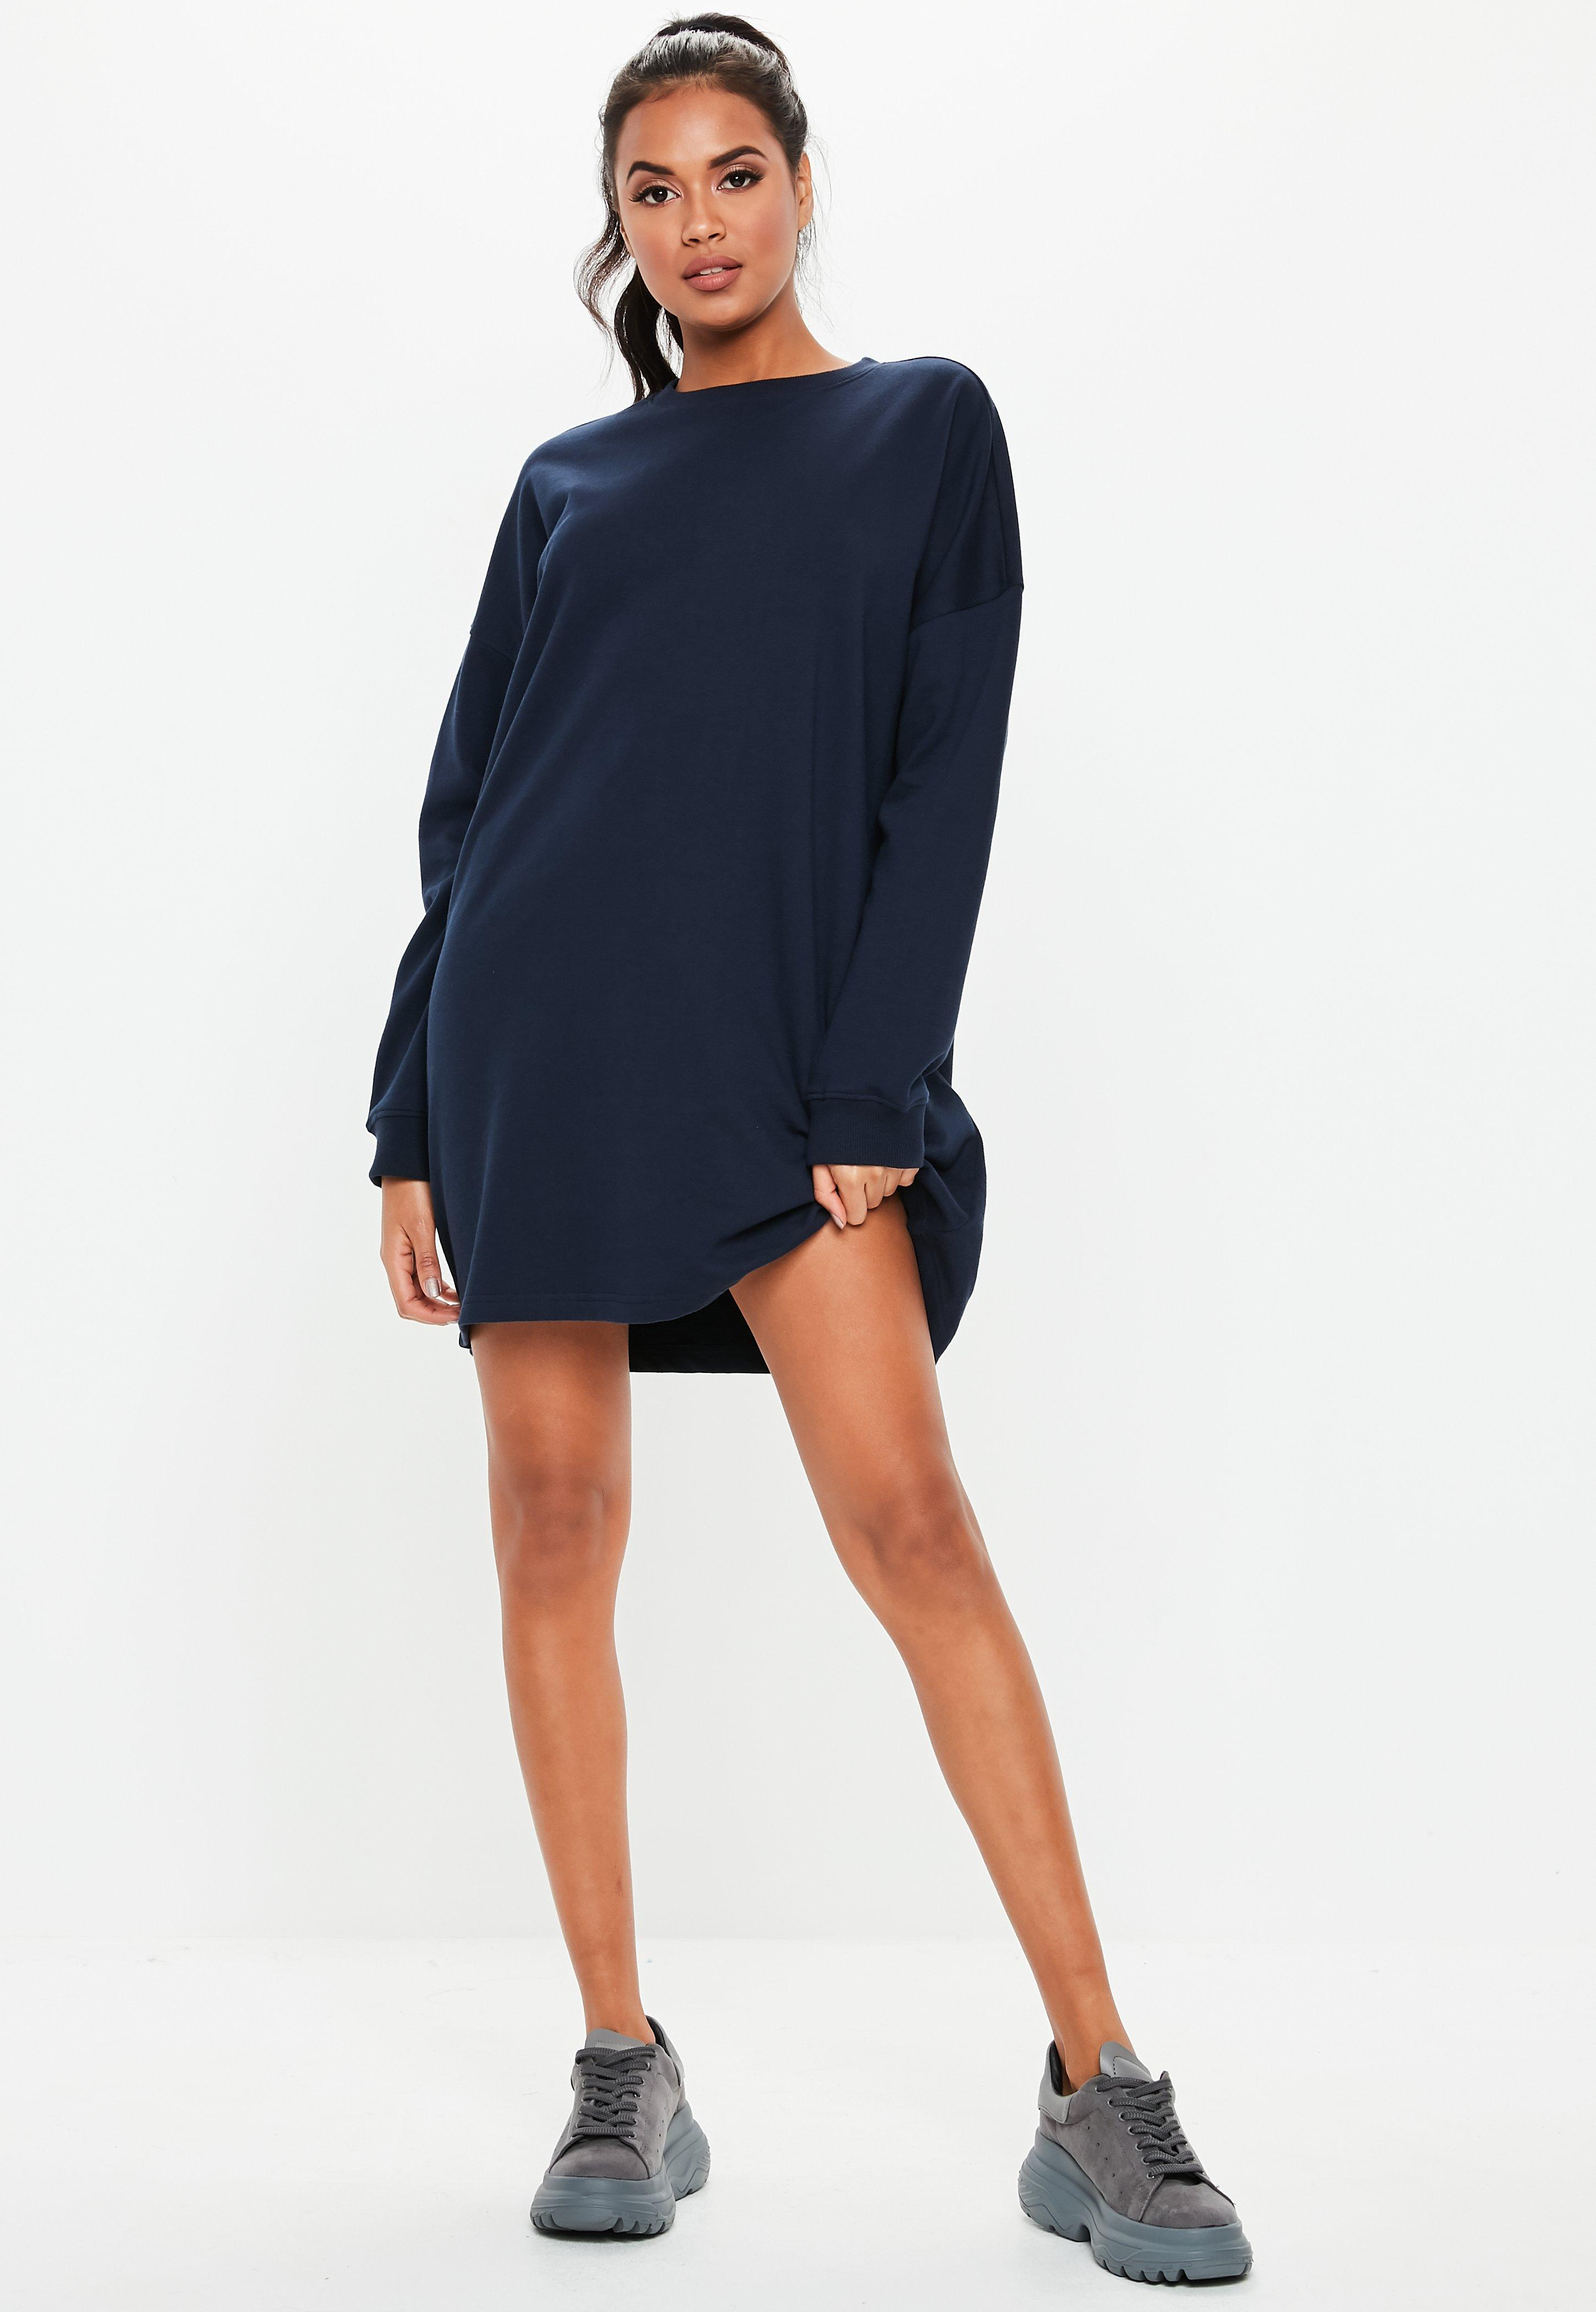 20270599284 Lyst - Missguided Navy Crew Neck Sweater Dress in Blue